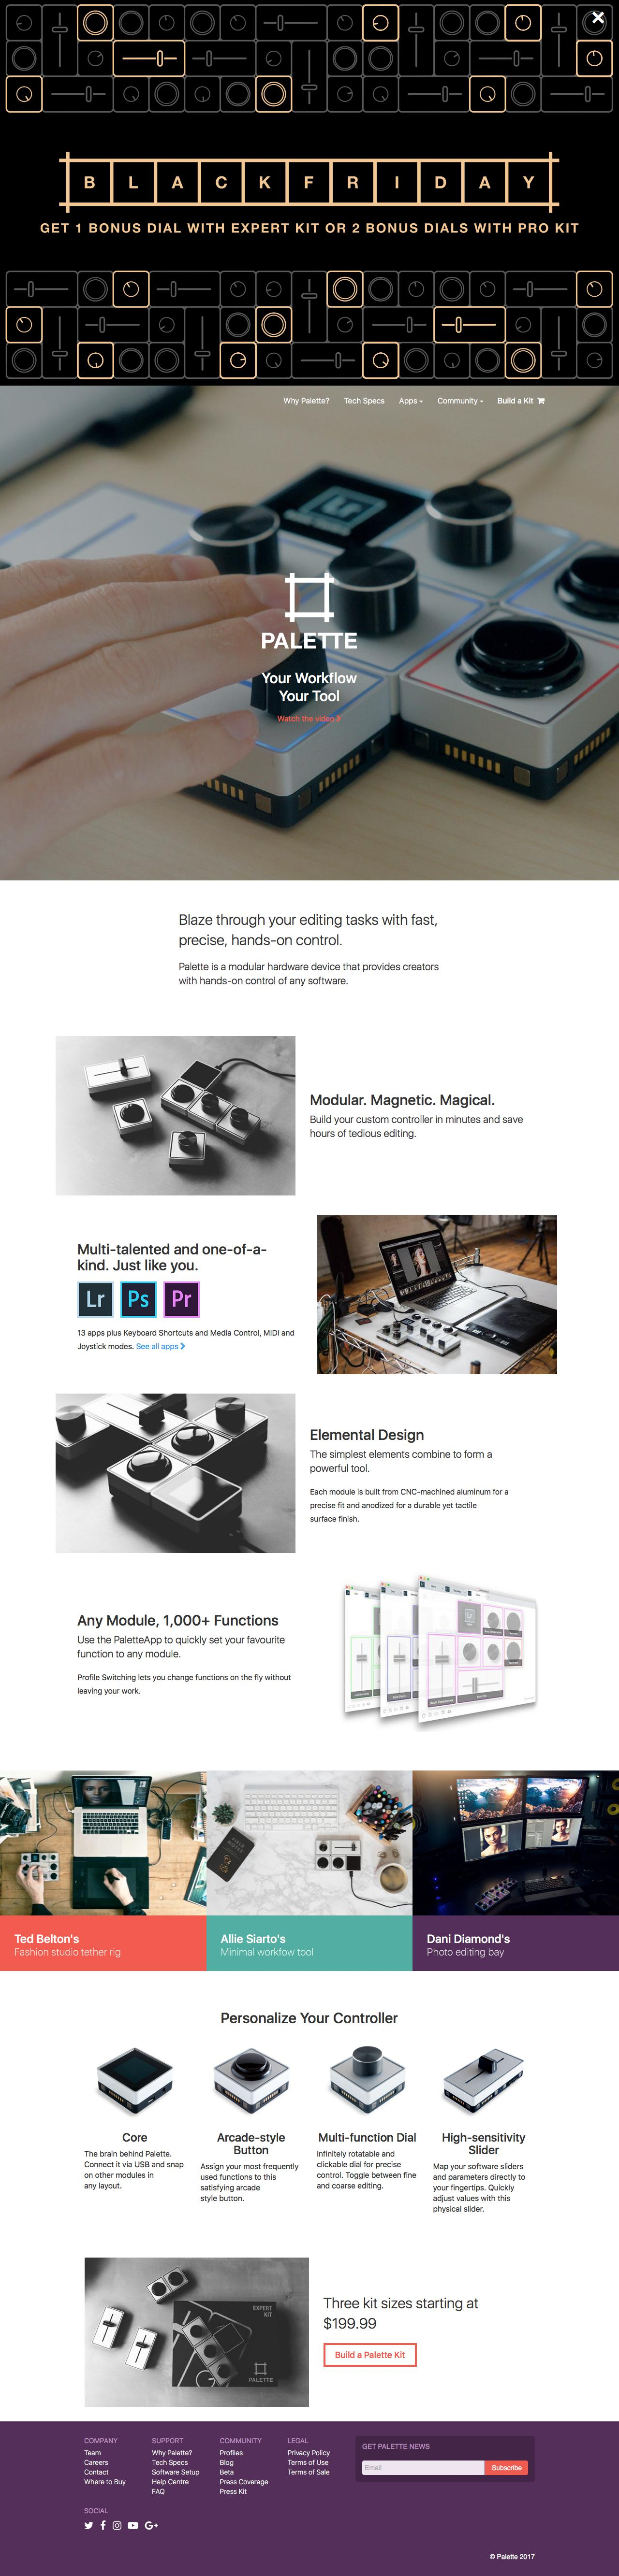 Screenshot of palettegear.com - Palette Gear: Hands-on Control of your Favourite Software - captured Nov. 26, 2017